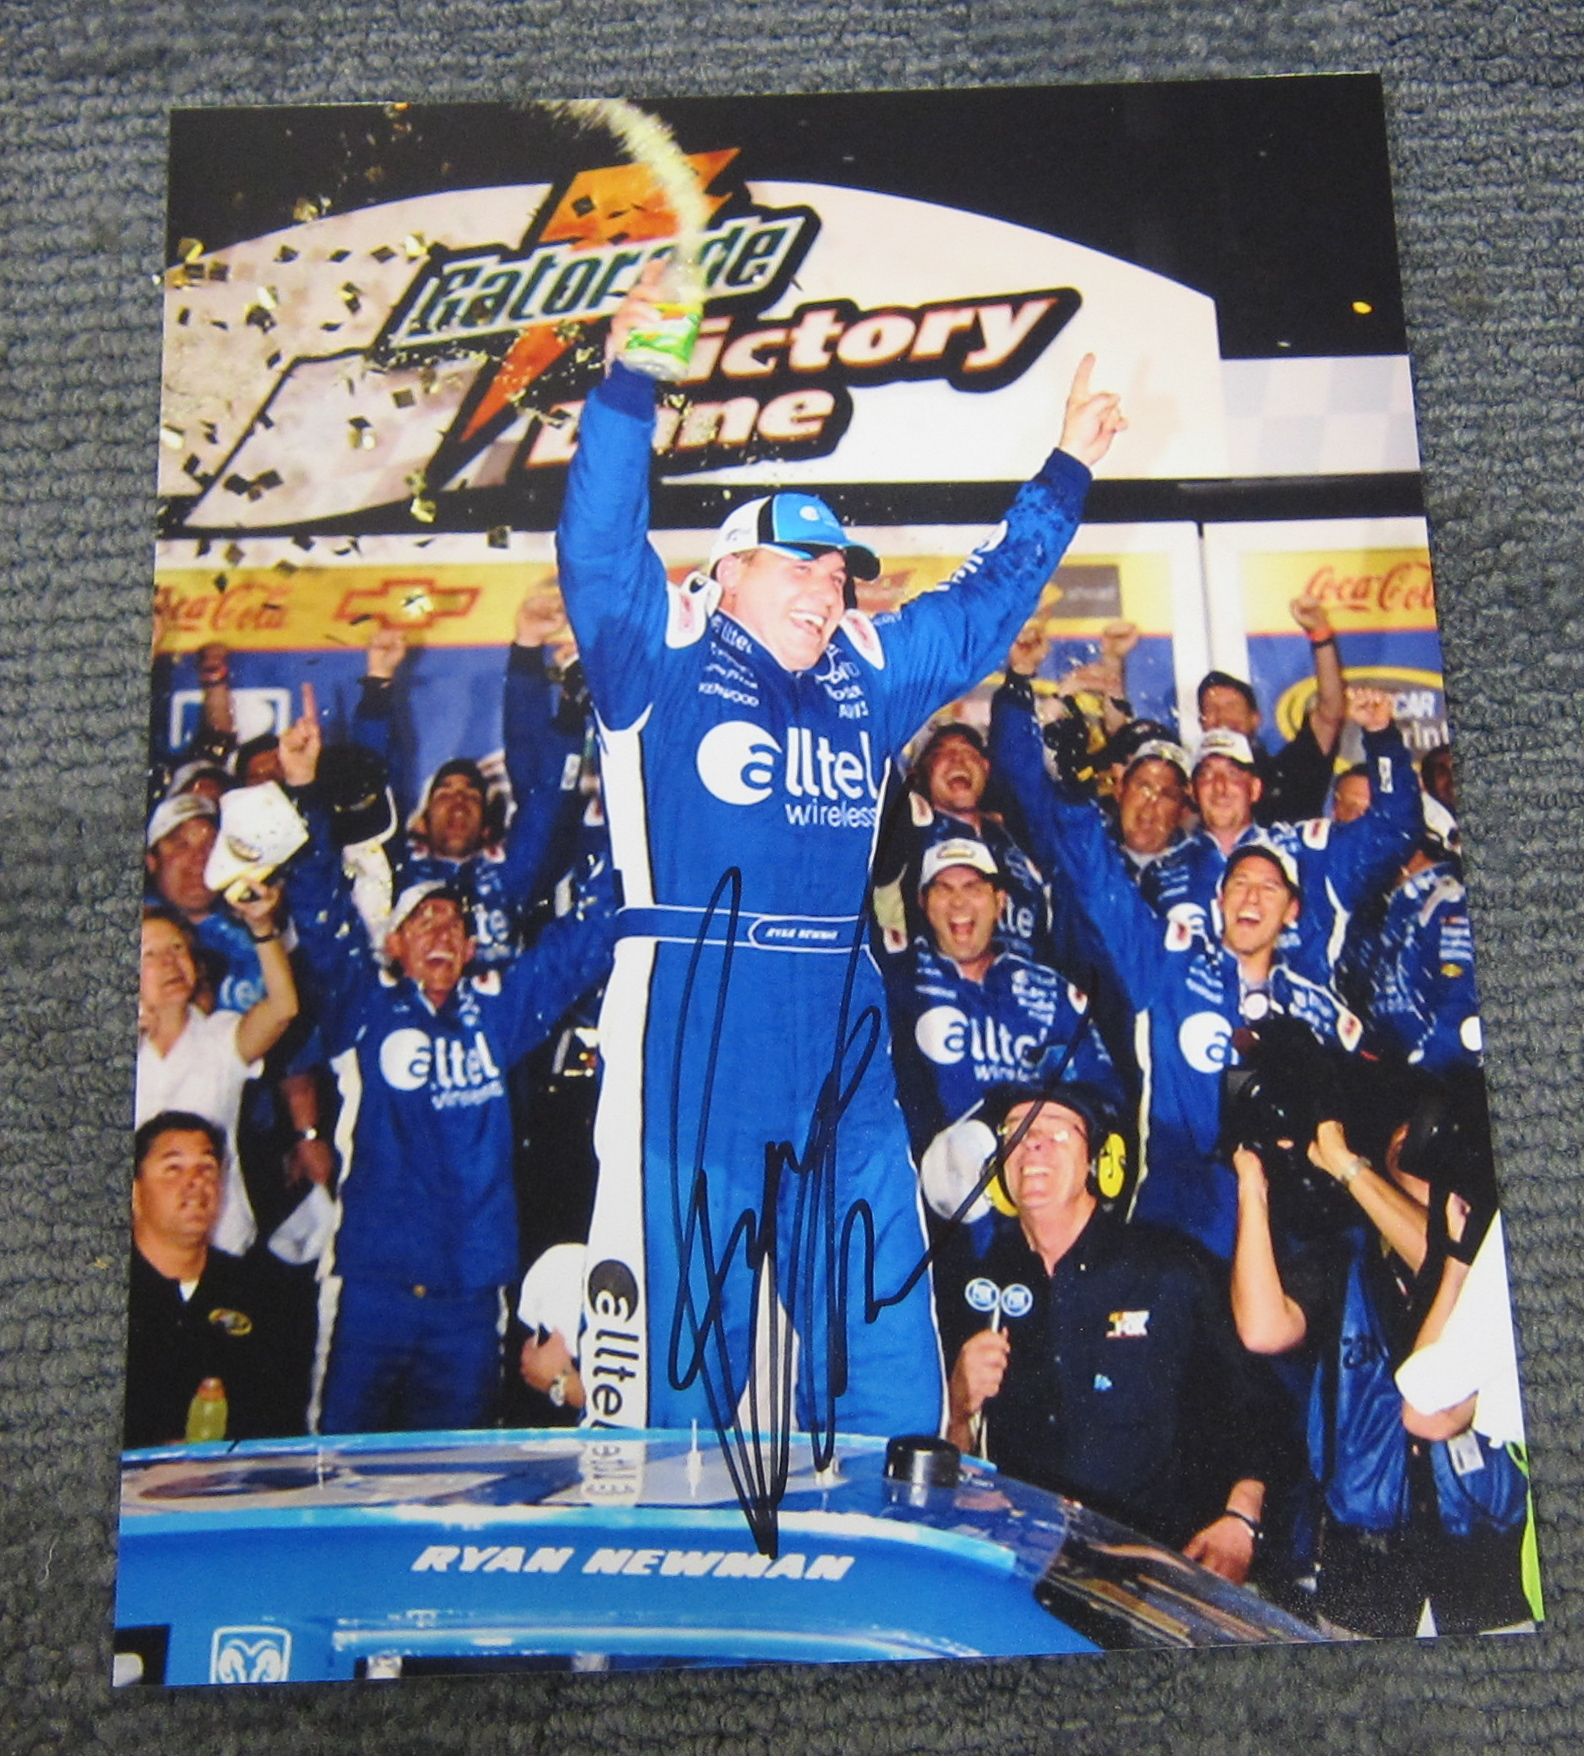 Autographed Ryan Newman